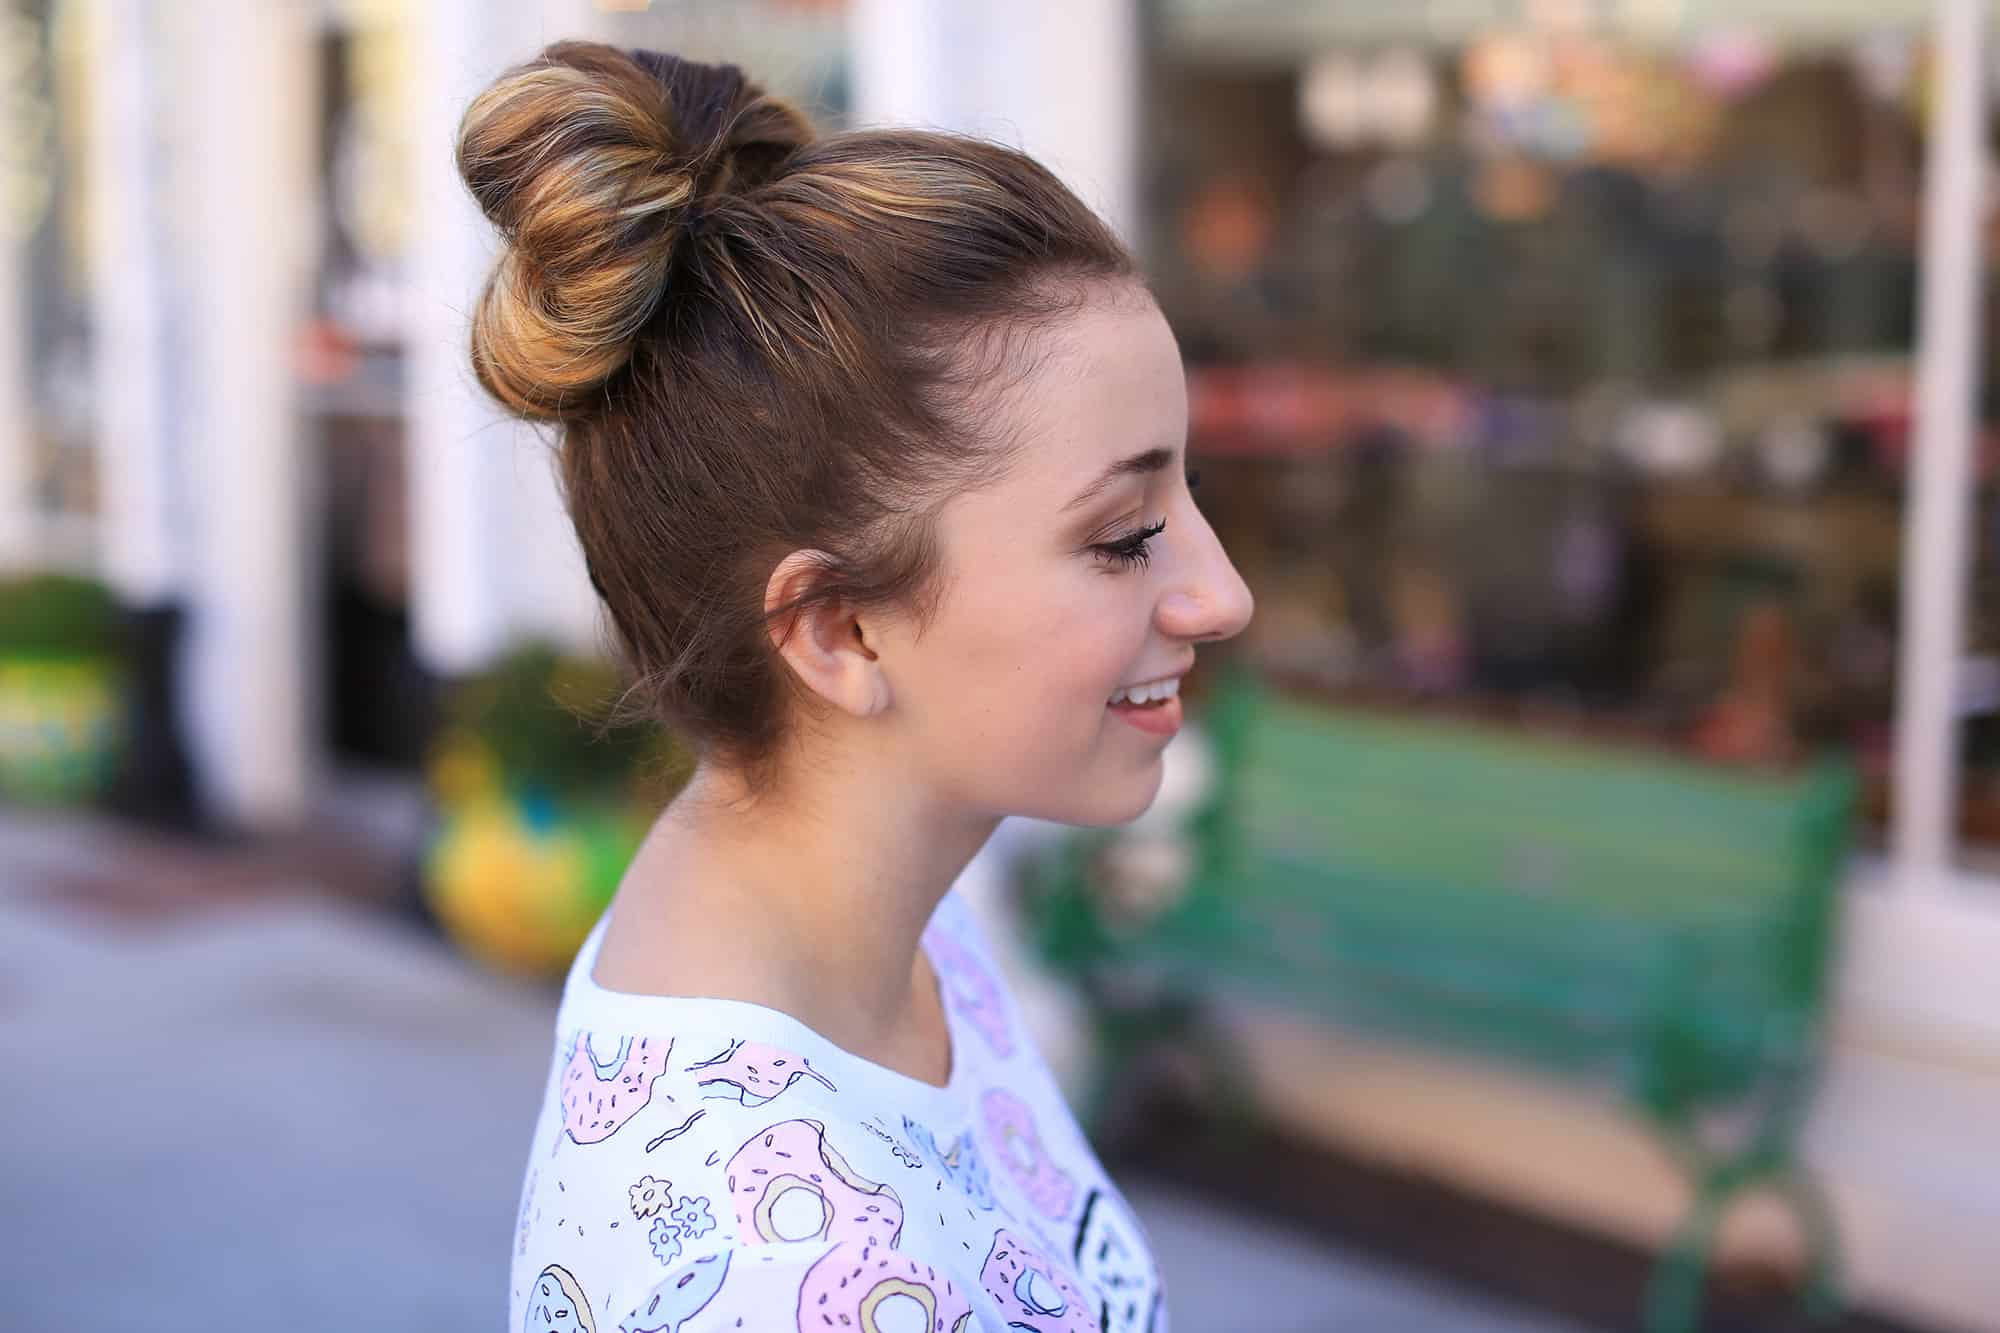 What your hairstyle reveals about your personality